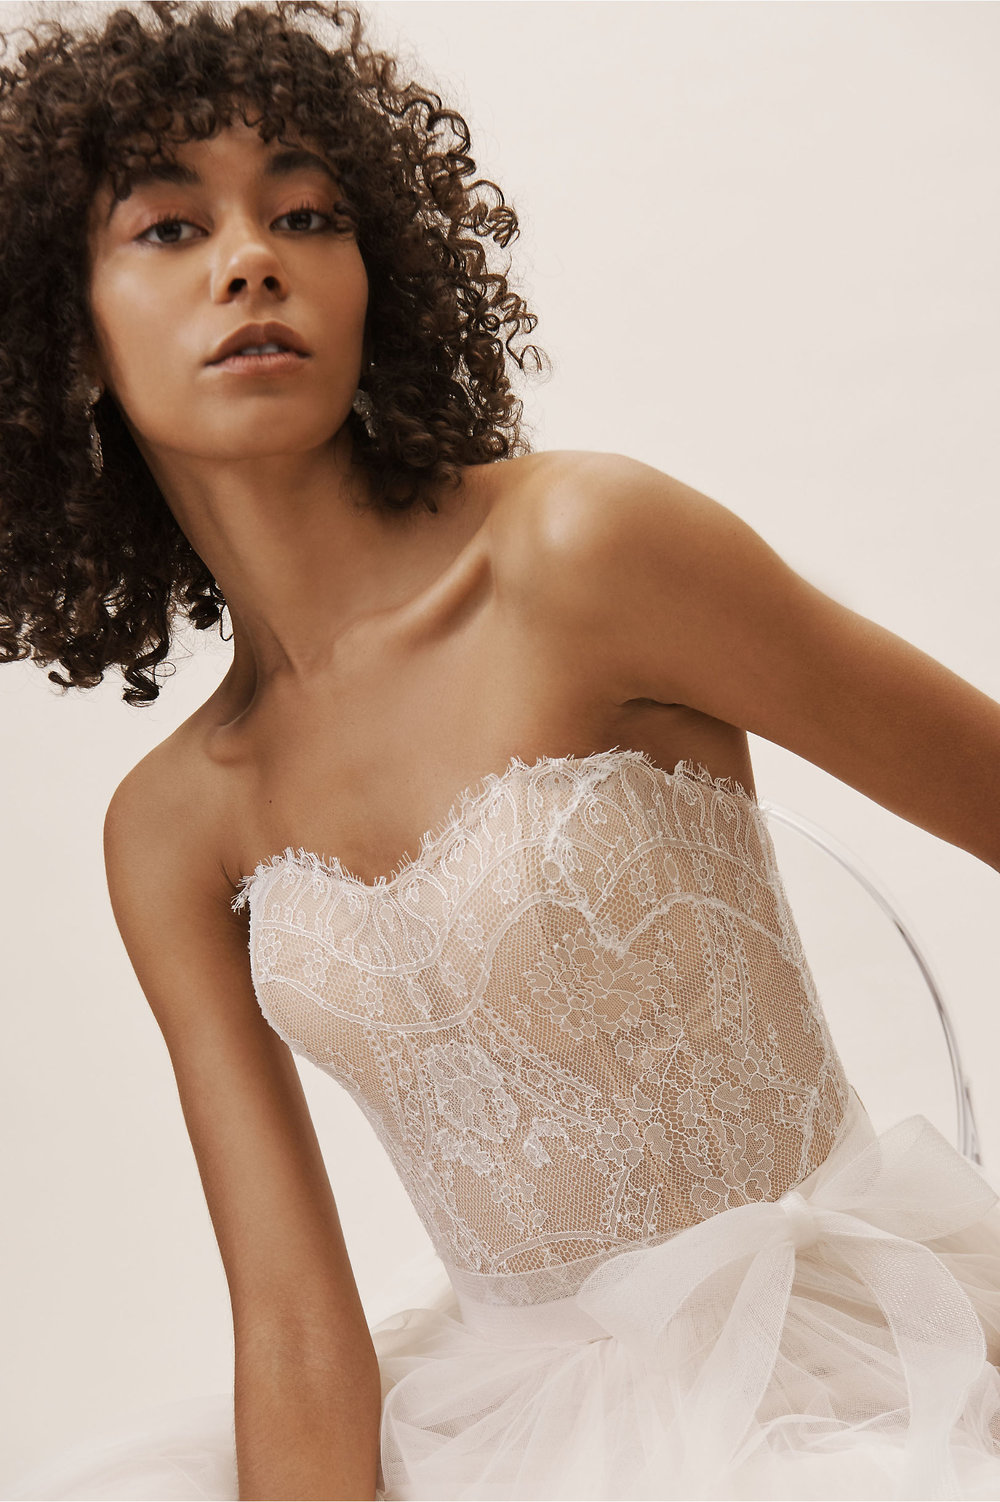 Girard Corset Top BHLDN Spring 2019 Wedding Collection